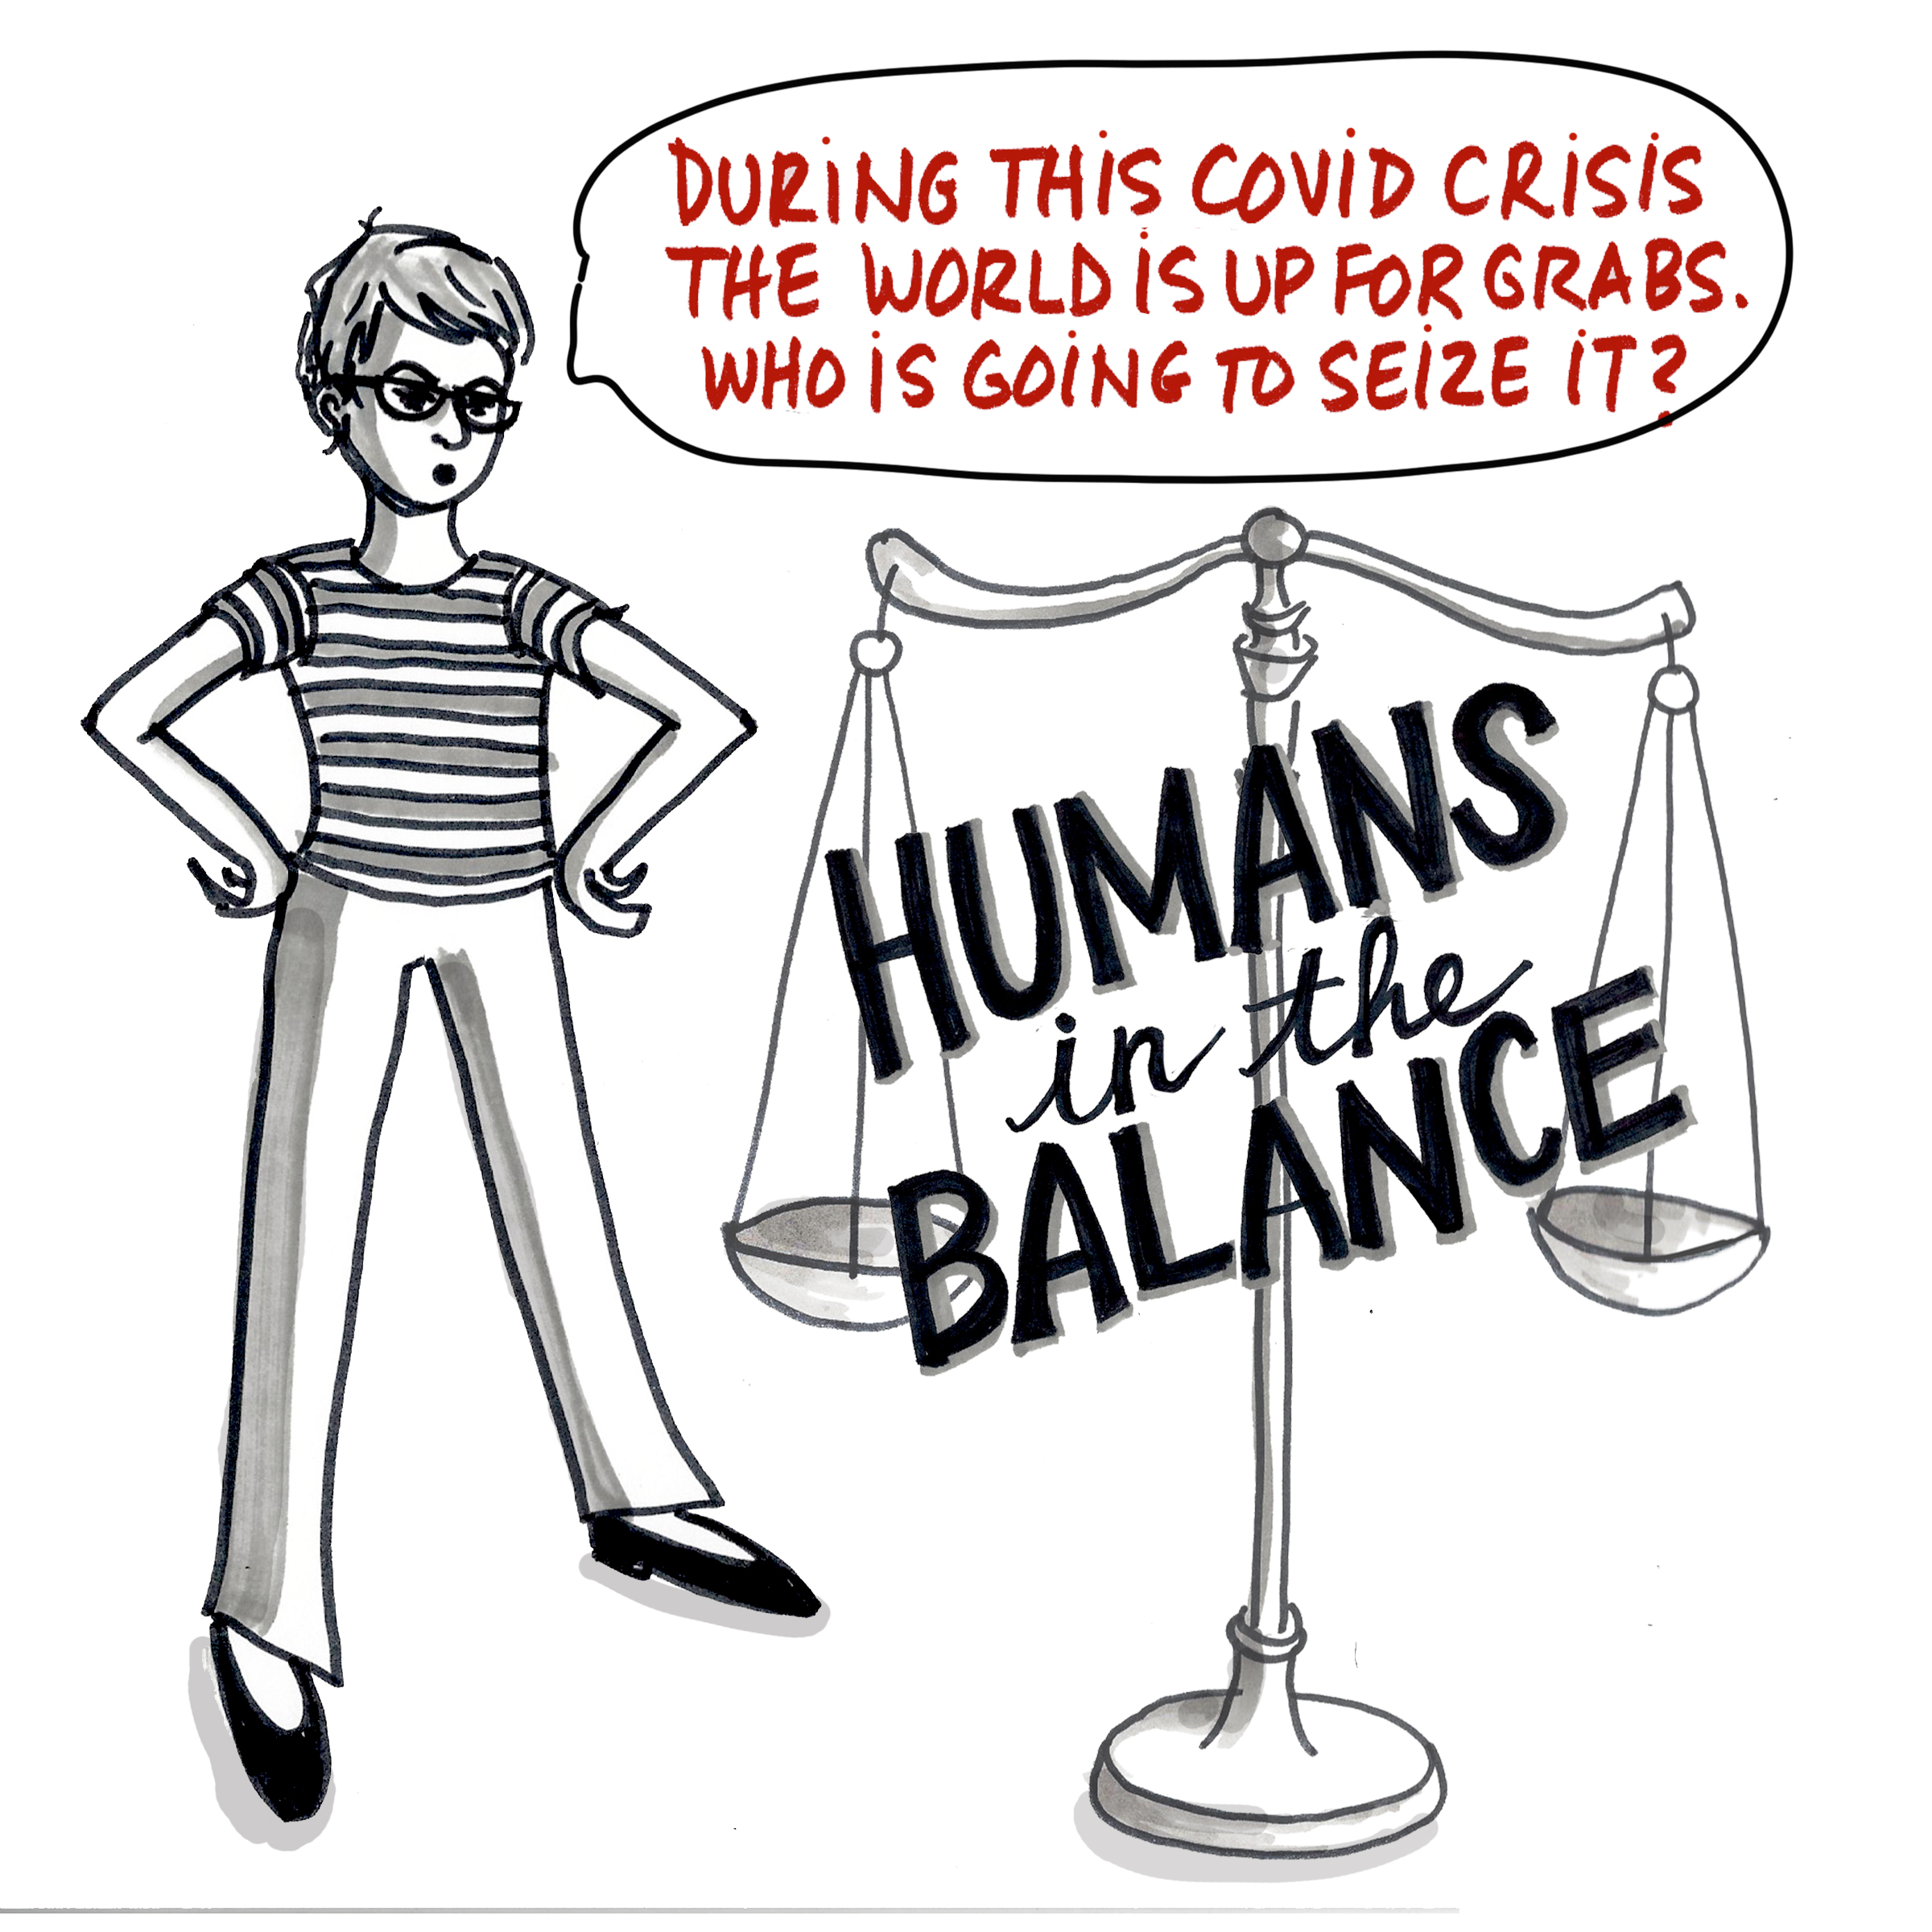 Where is humanity going during Covid-19? A Comic by Alison Garwood-Jones